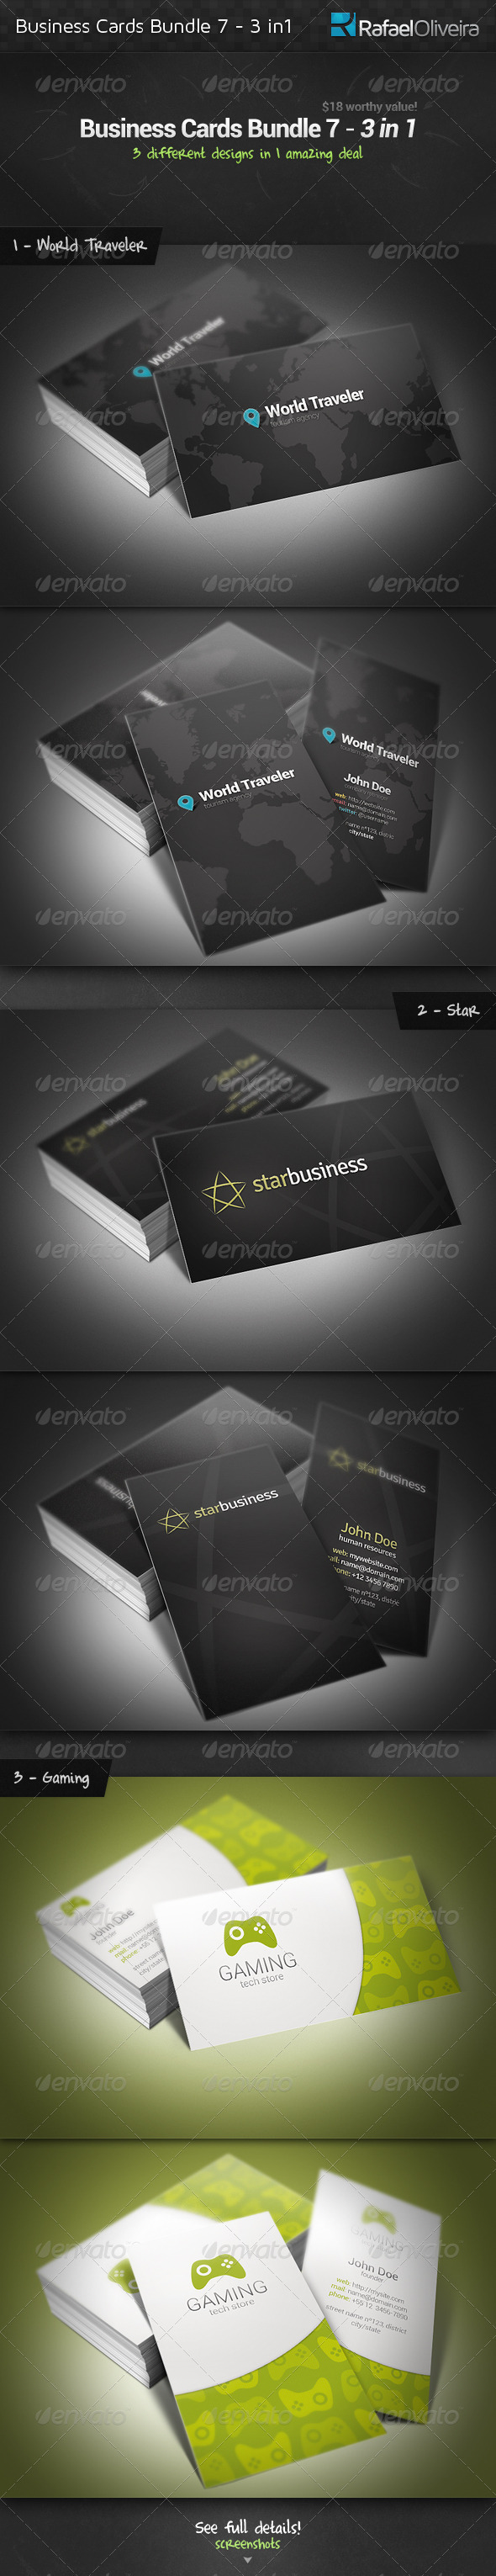 Business Cards Bundle 7 - 3 in 1 - Corporate Business Cards